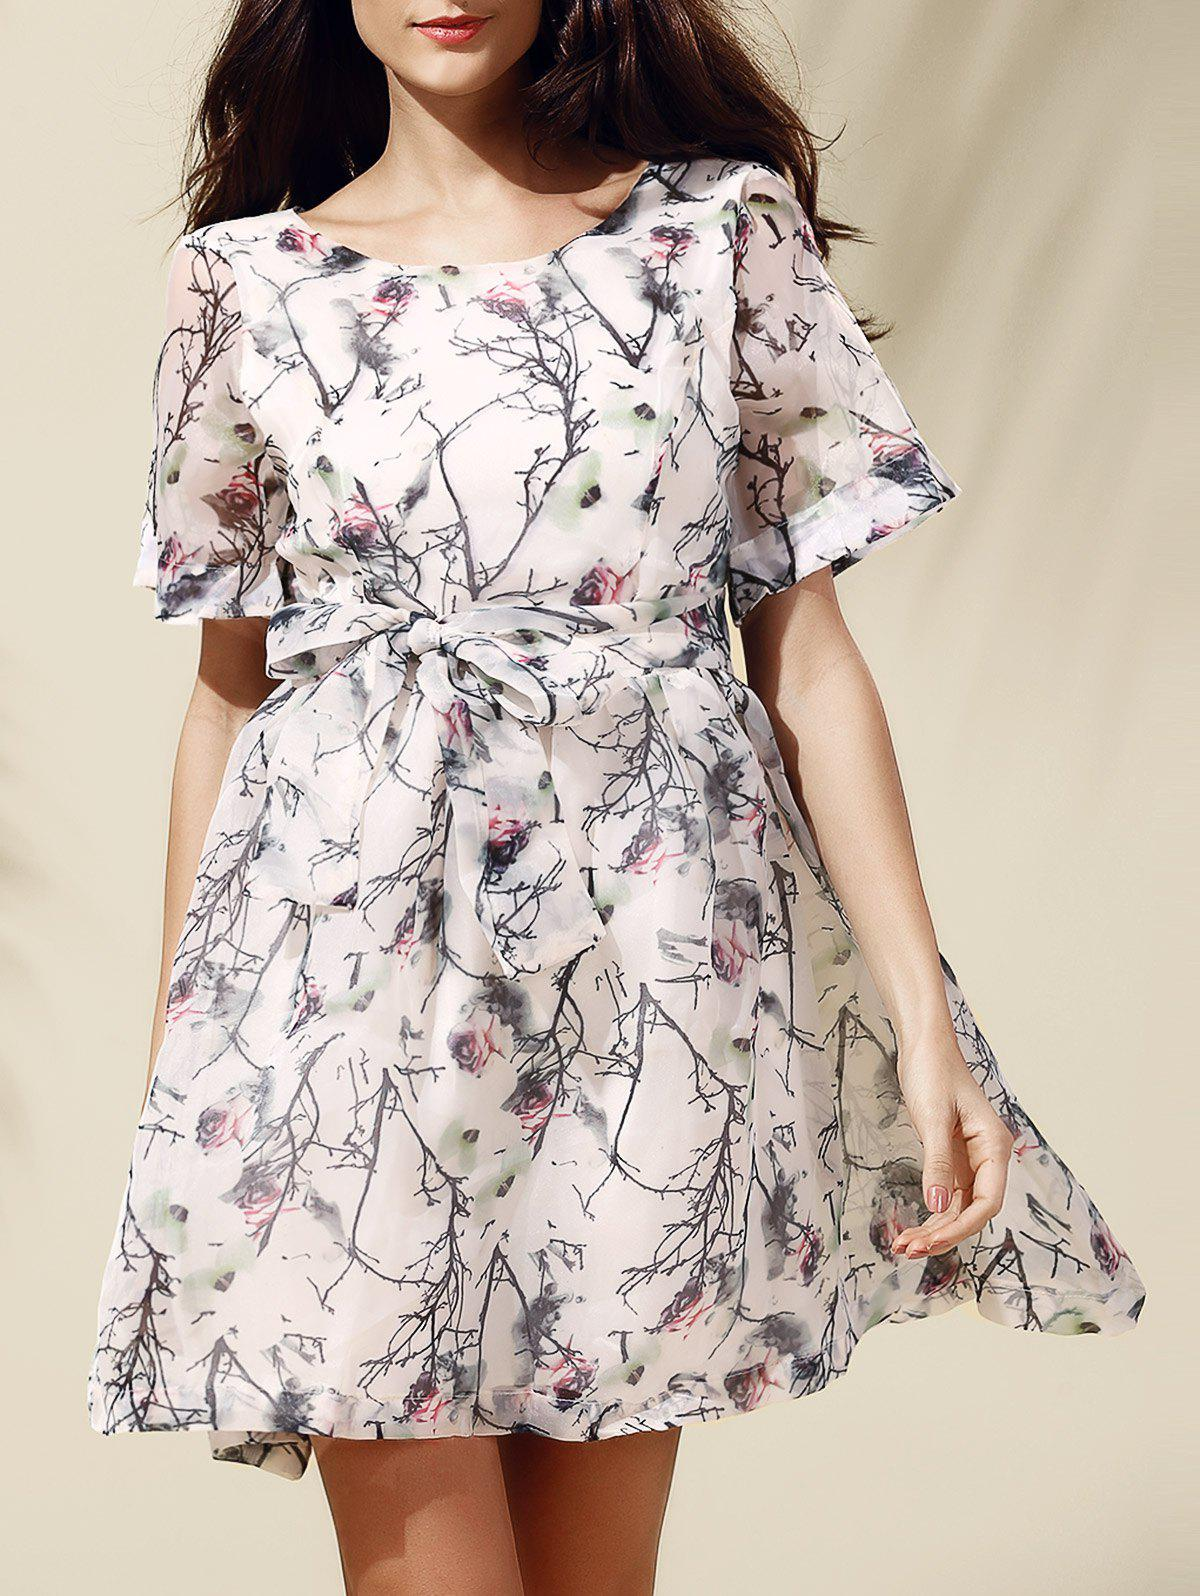 Sweet Women's Short Sleeve Scoop Neck Floral Print Self-Tie Dress